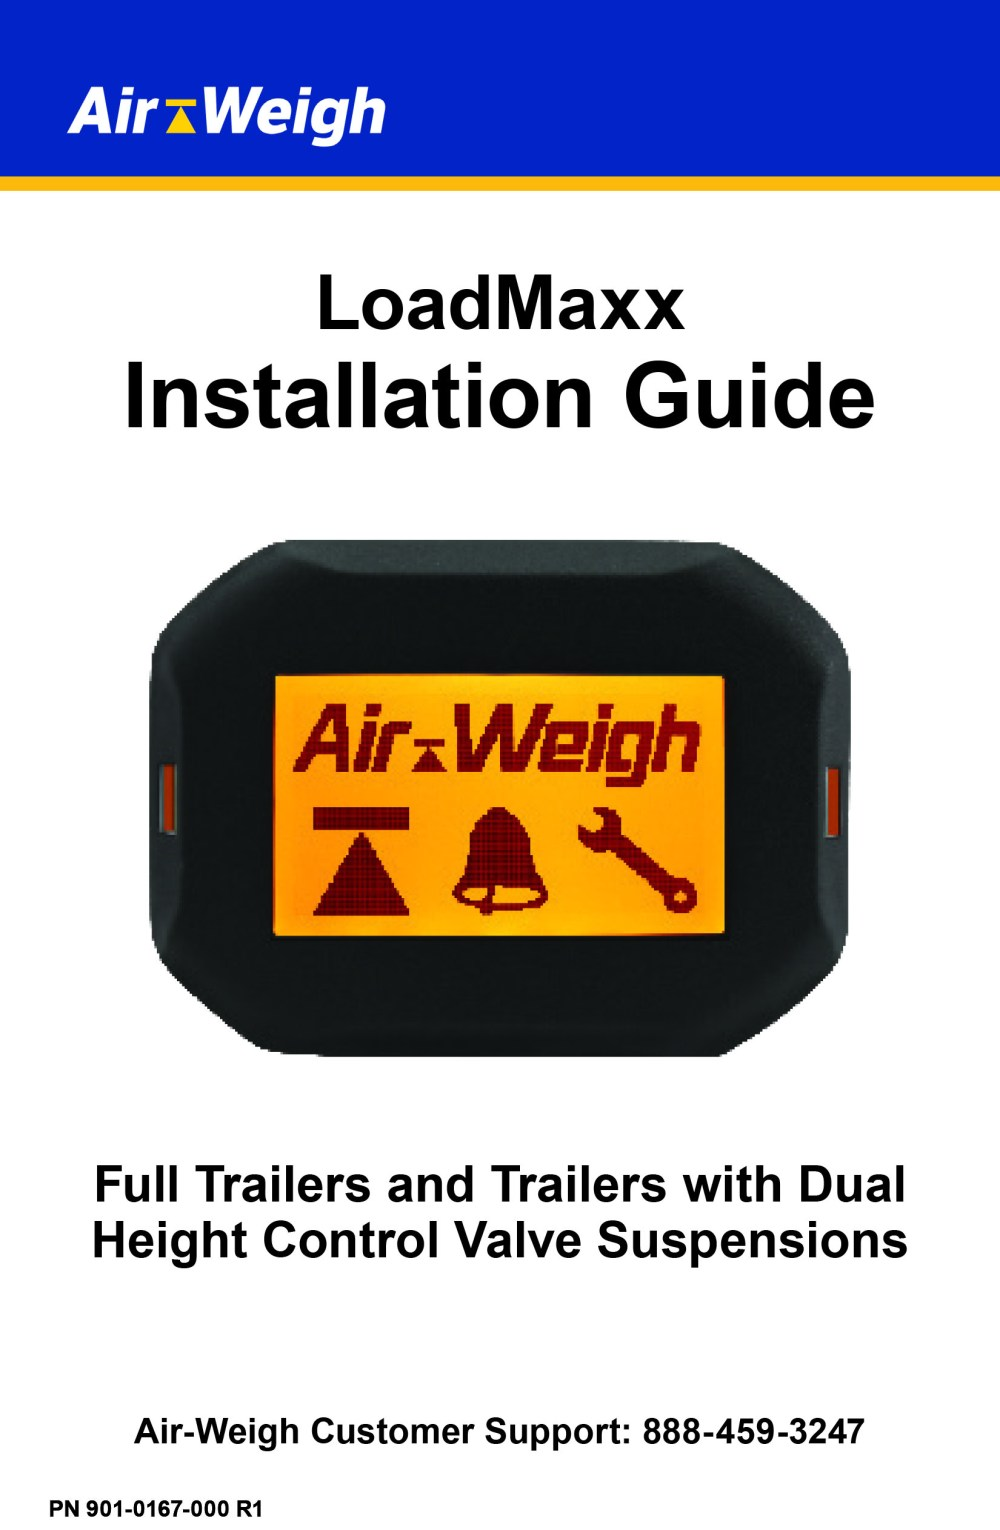 medium resolution of installation guide for full trailers and trailers with dual hcv suspensions